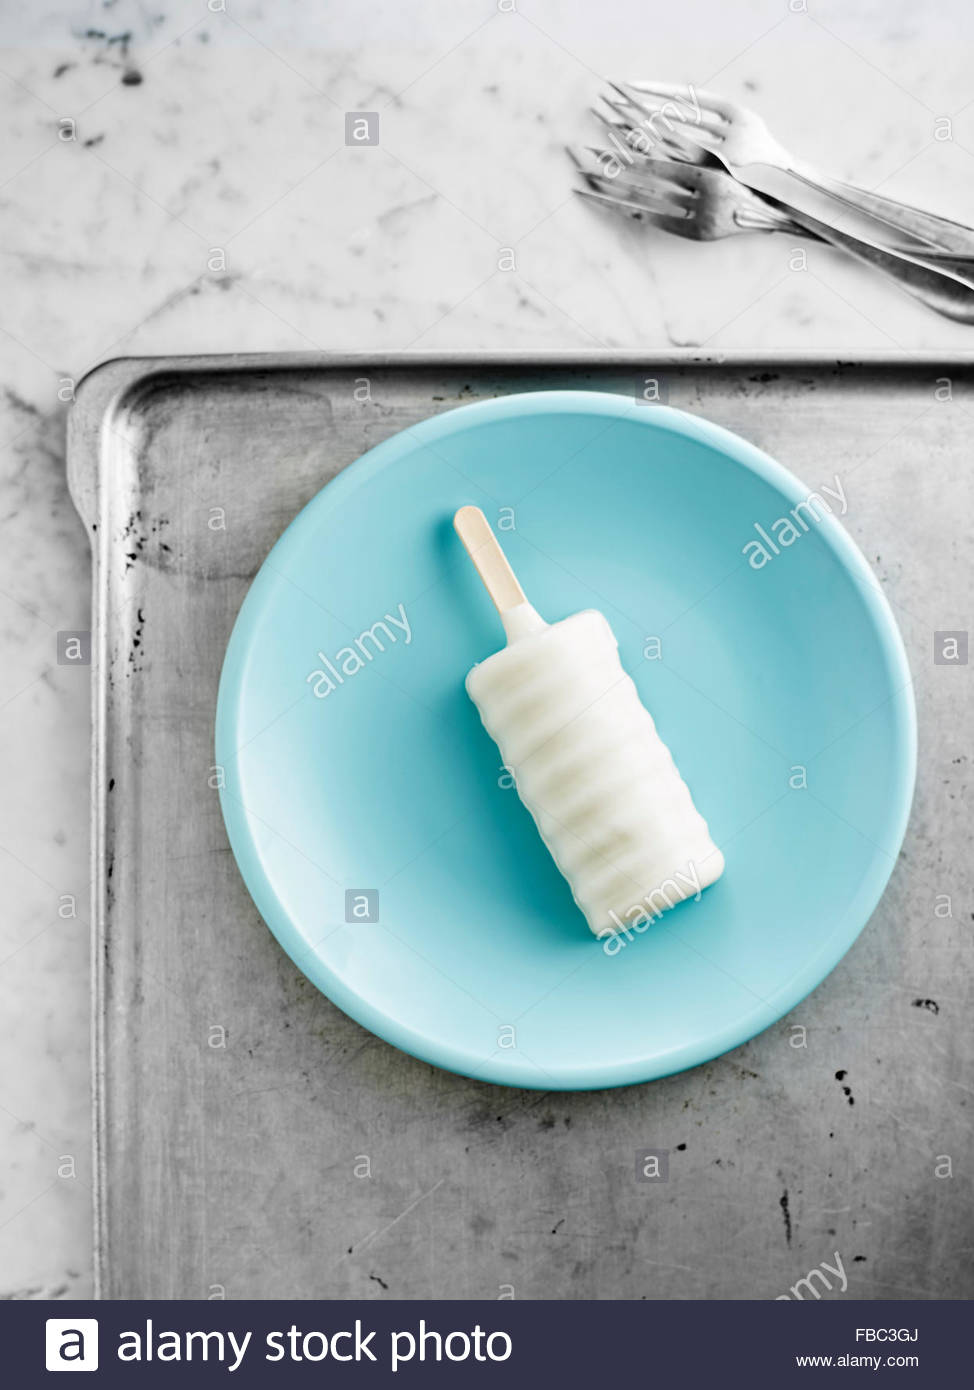 White creamsicle on blue plate - Stock Image